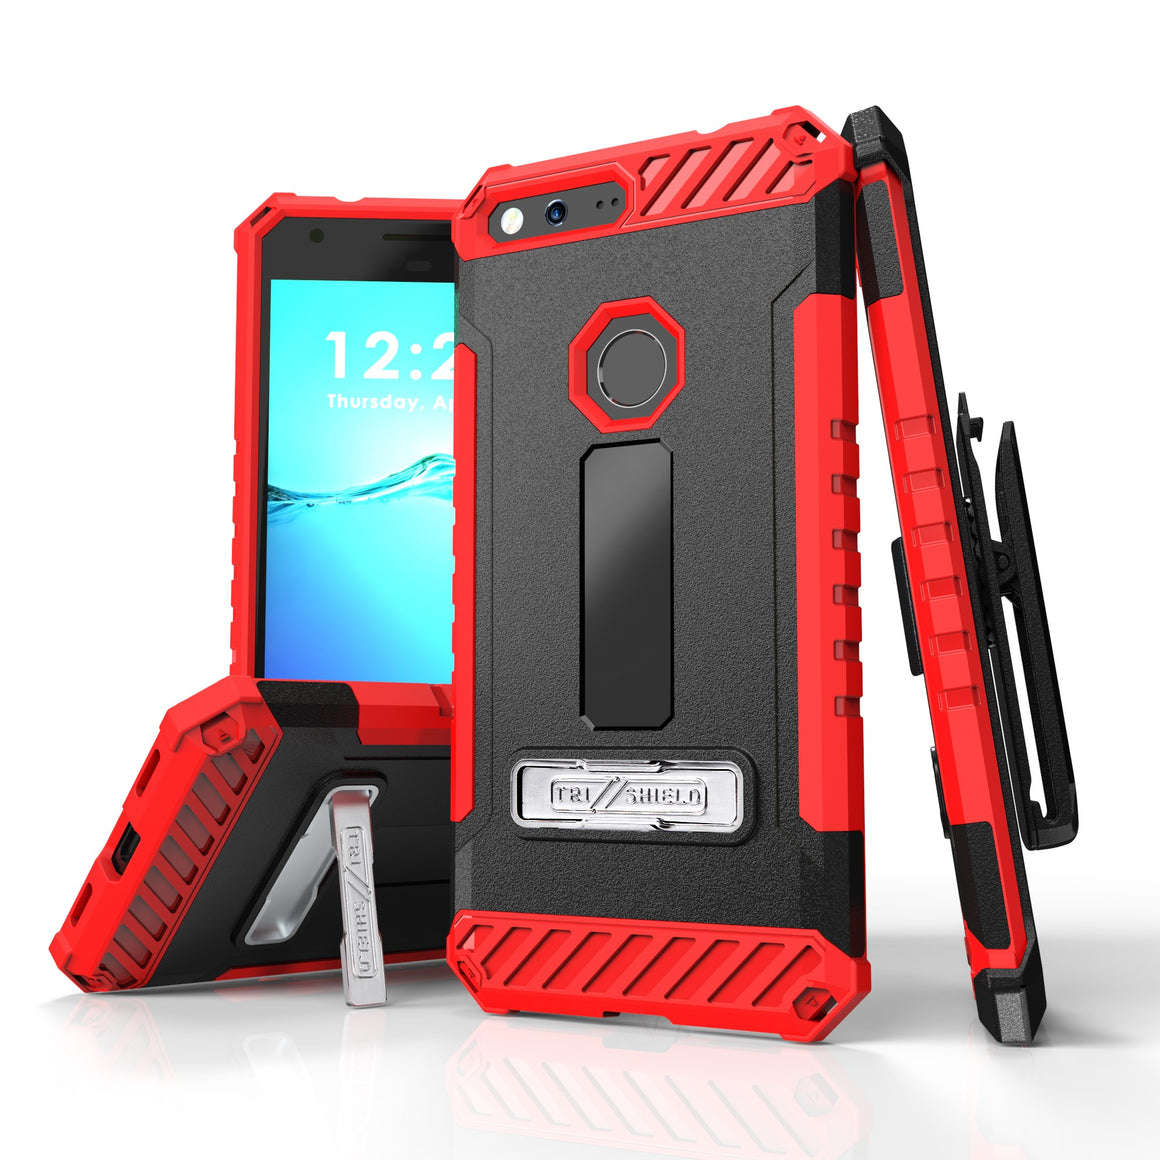 Tri Shield For Google Pixel XL 5.5 (Verizon) Black/Red, TPU Case,Kickstand, with Belt Clip Holster,